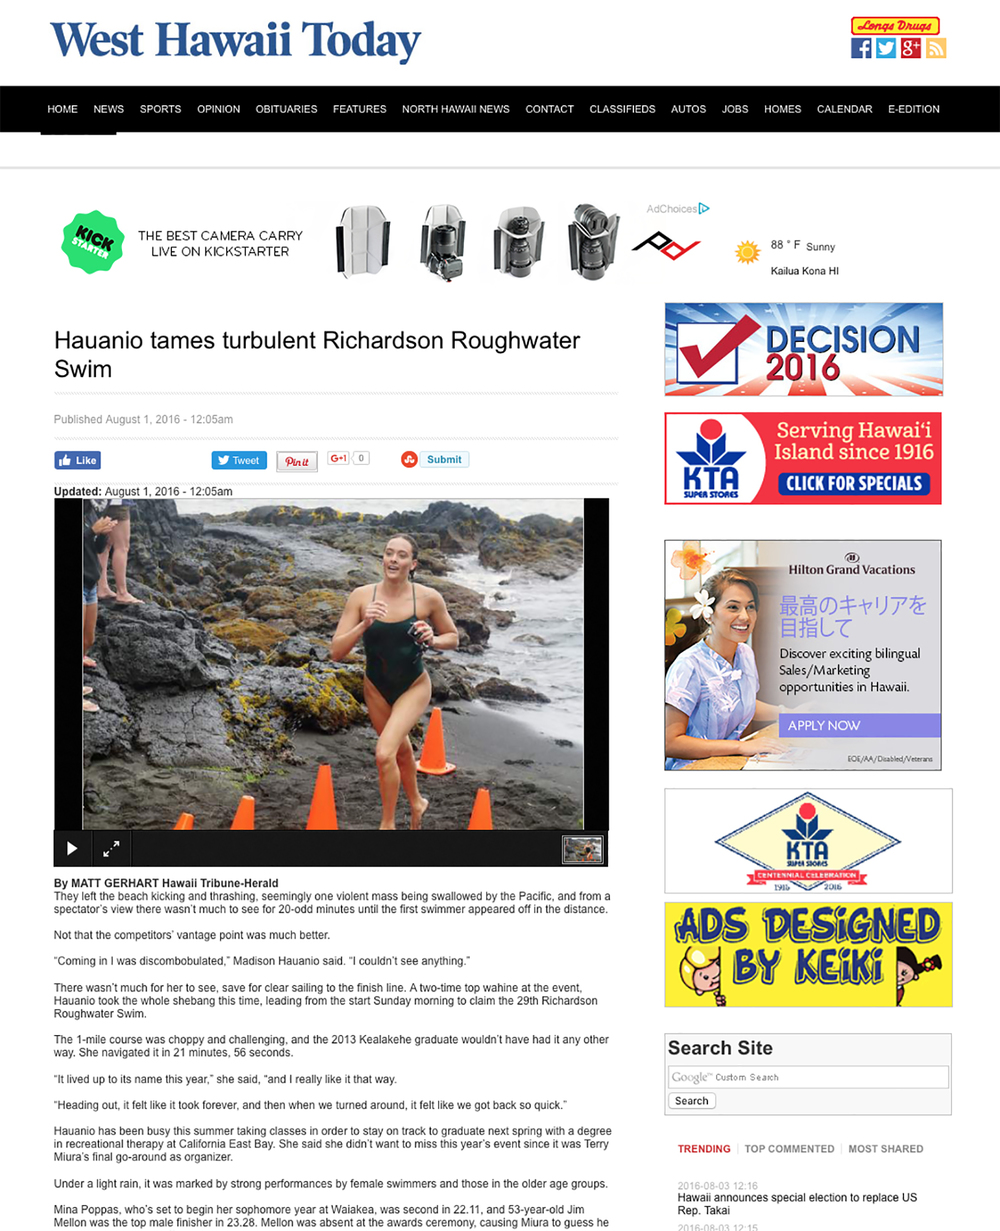 Madison Hauanio first out of the water at the Hilo Richardson Roughwater Swim.